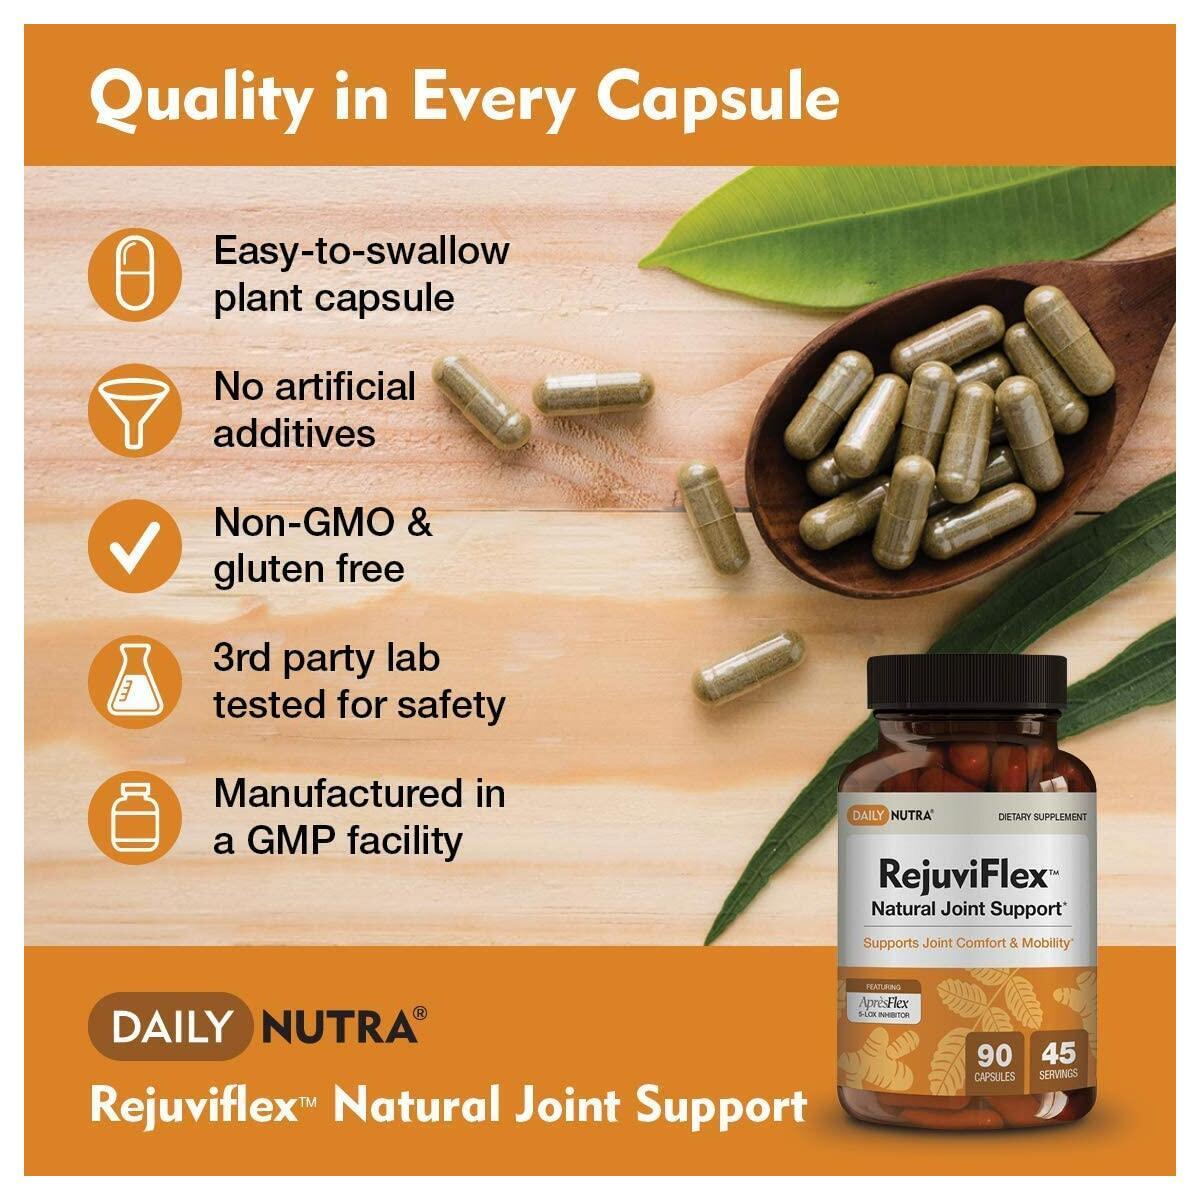 RejuviFlex by DailyNutra - Natural Joint Supplement for Men & Women - Supports Joint and Knee Pain Relief | Featuring ApresFlex Boswellia Extract, Turmeric Curcumin and White Willow Bark (90 Capsules)